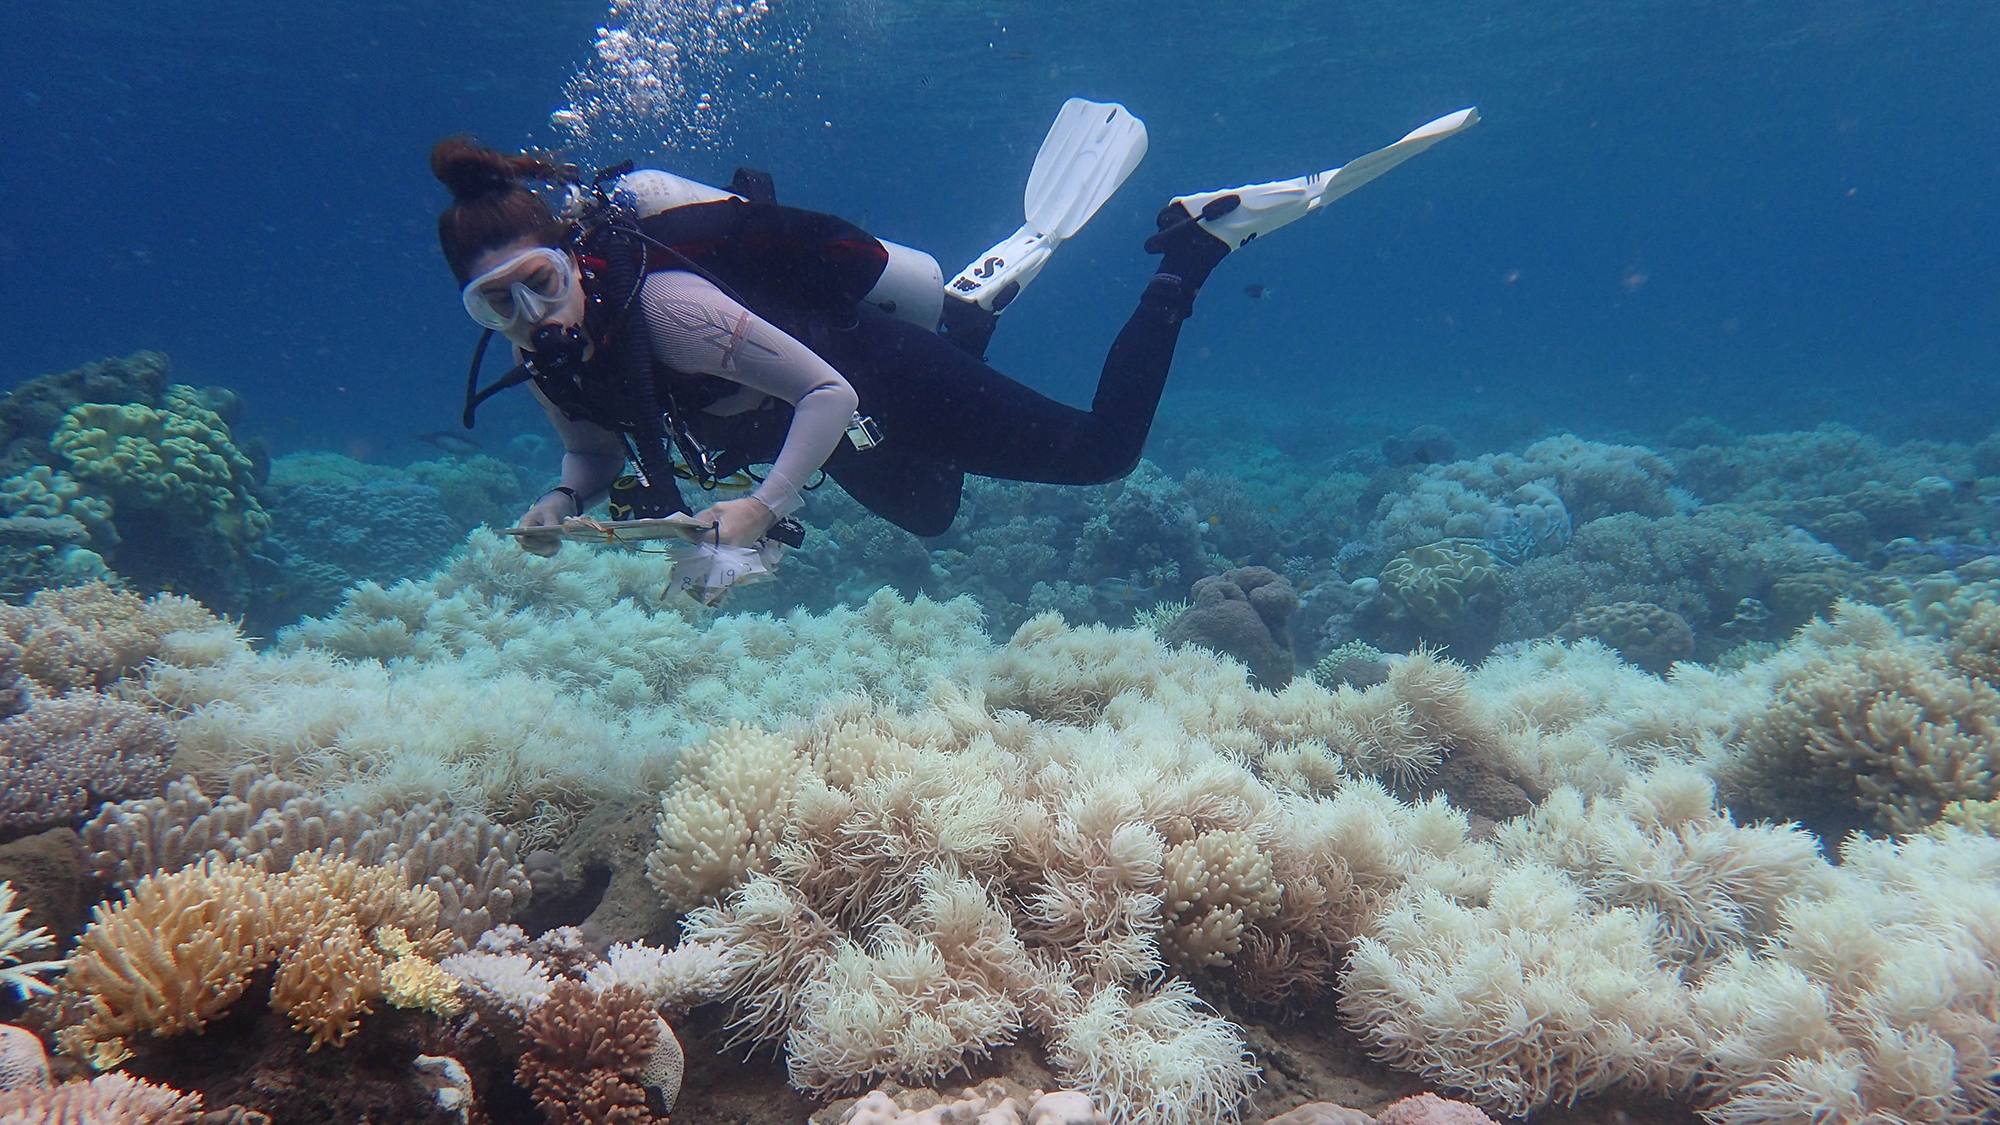 Fish aquarium tarapur - A Close Up Look At The Catastrophic Bleaching Of The Great Barrier Reef